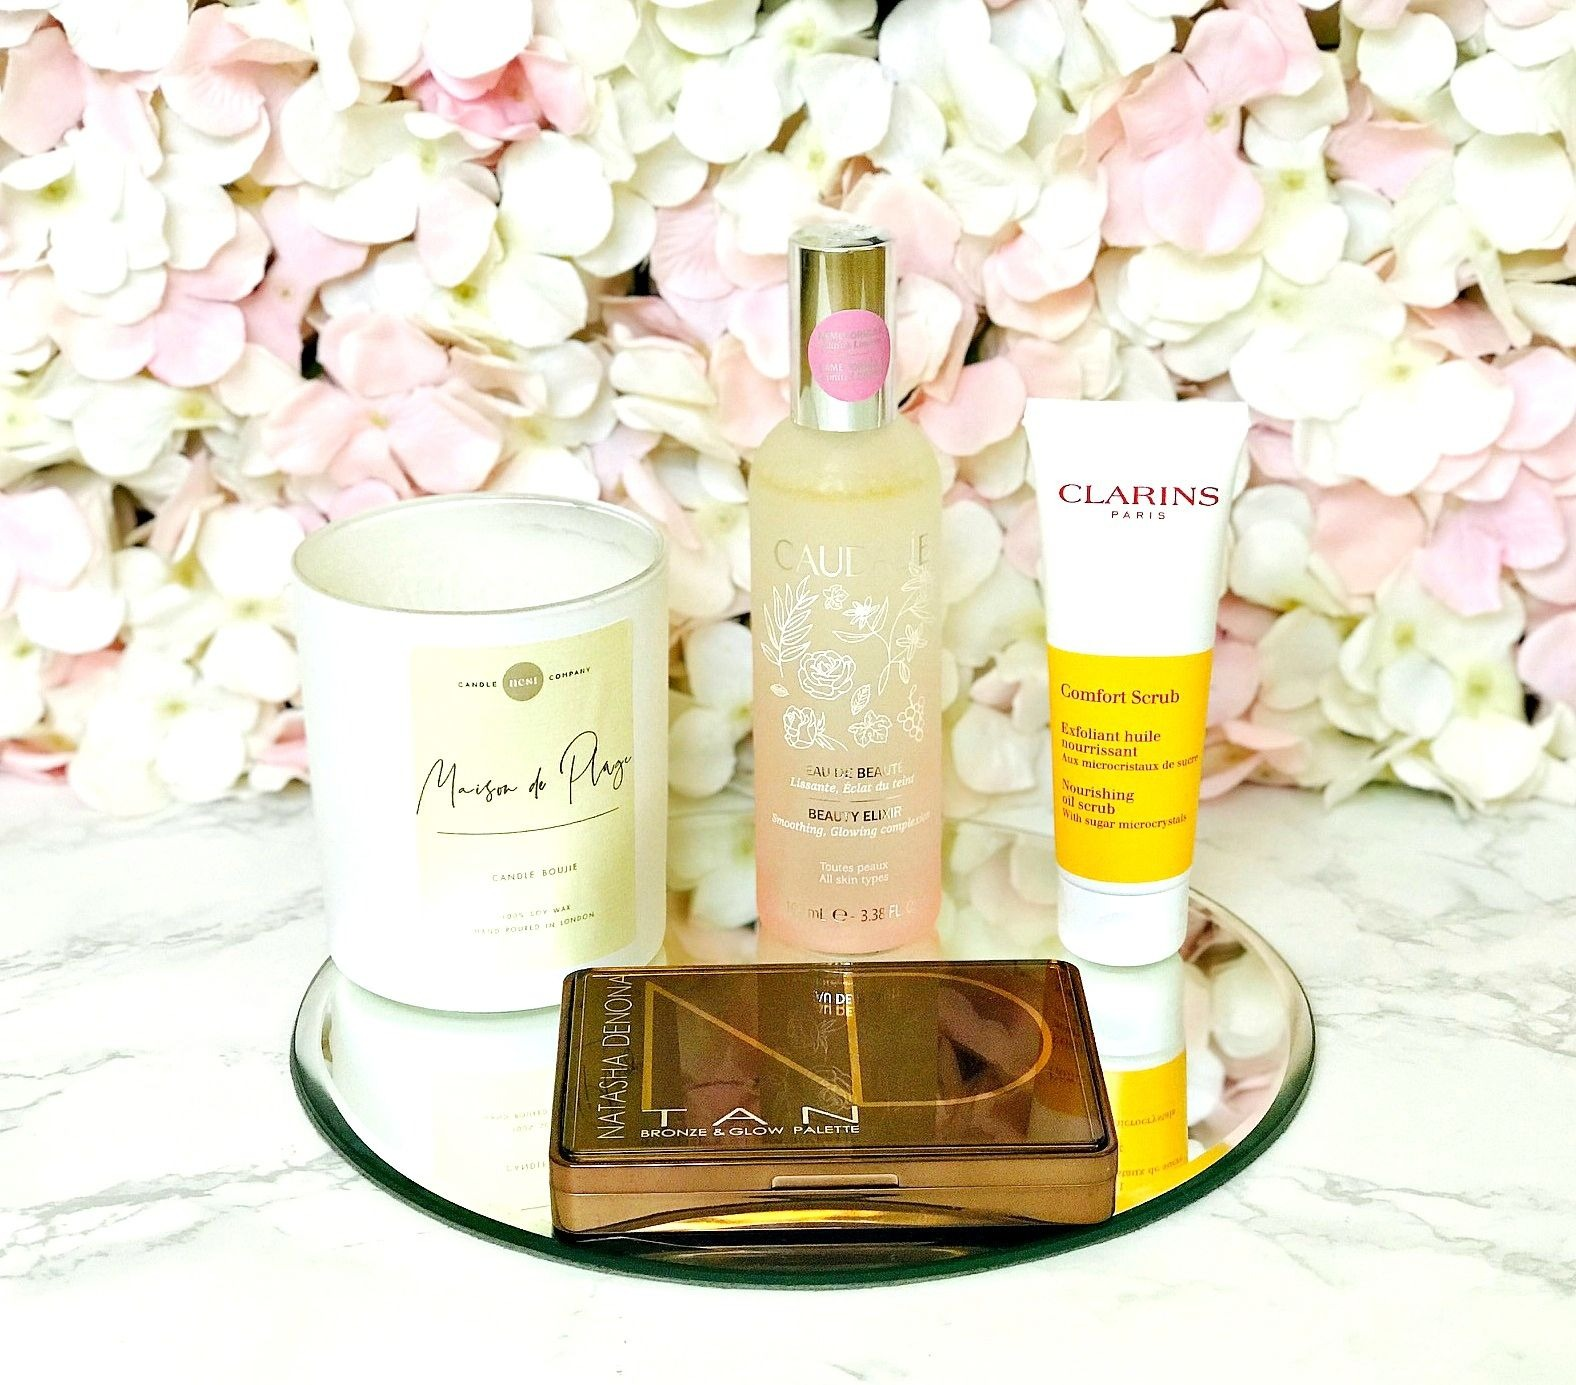 3 treats for 3 budgets, Caudalie Beauty Elixir, Clarins Comfort Scrub, Natasha Denona Tan Palette, Nest Candles